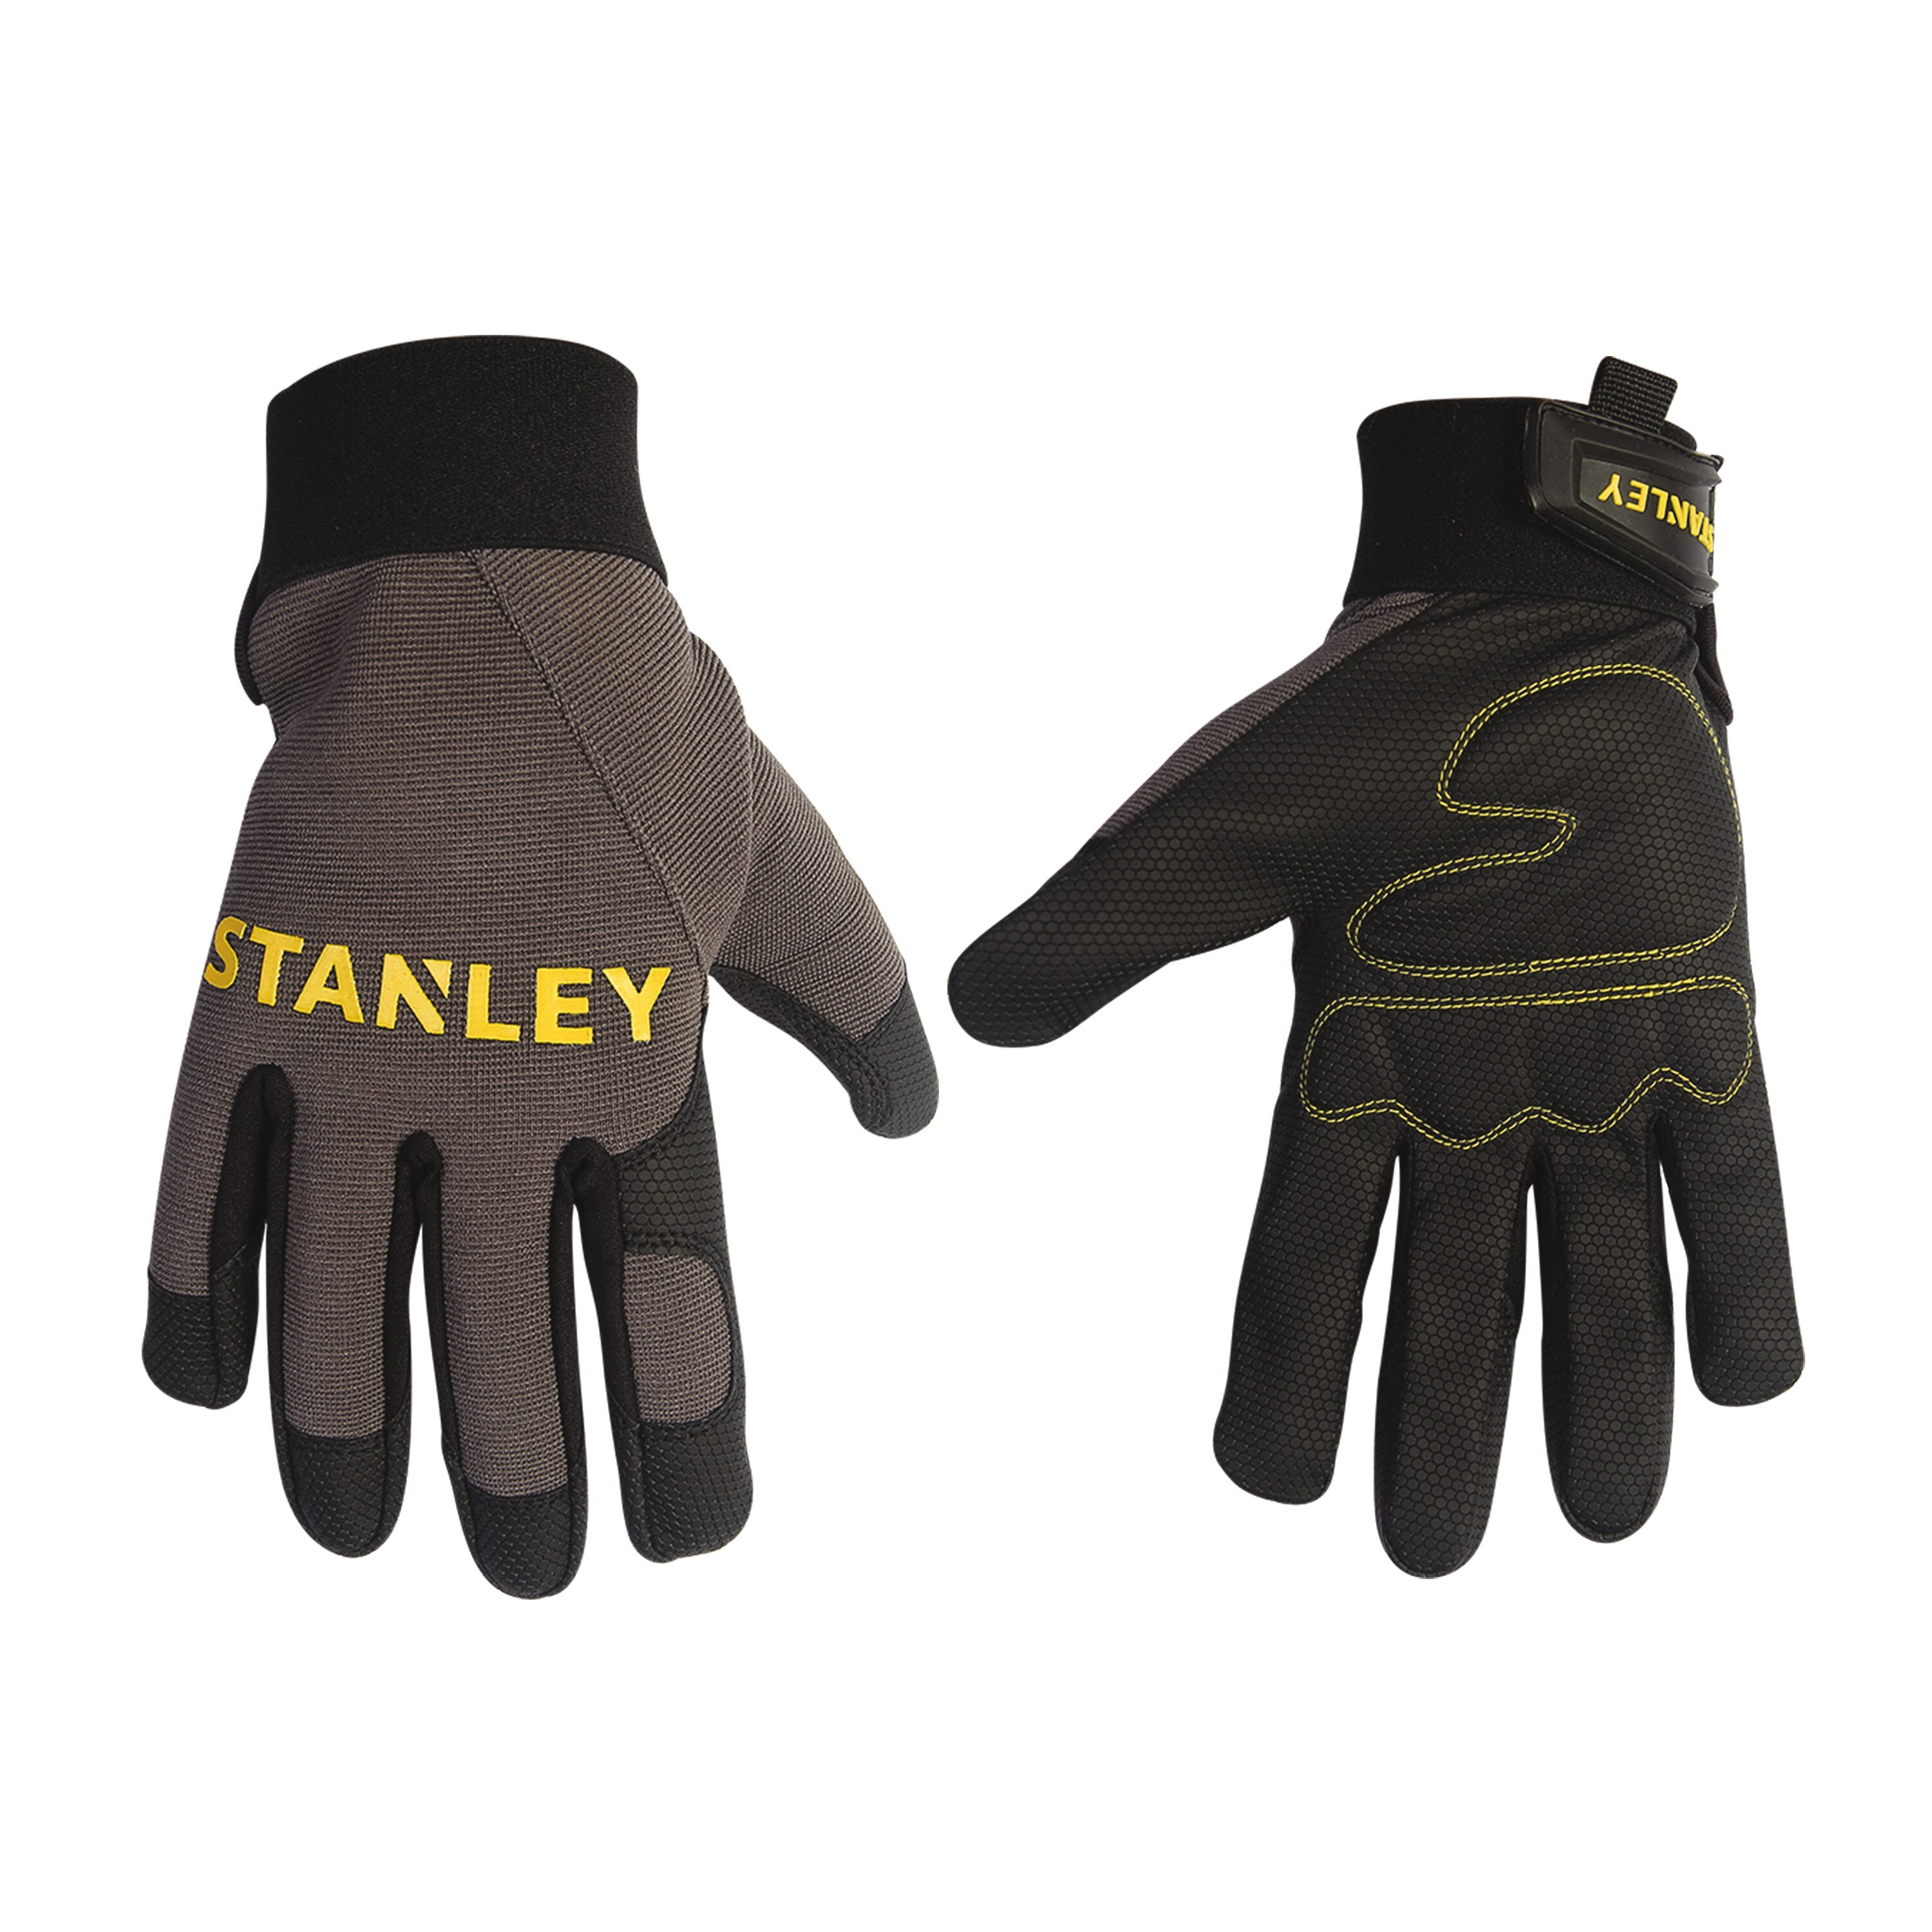 Stanley Tools - Padded Comfort Grip Gloves - S77642